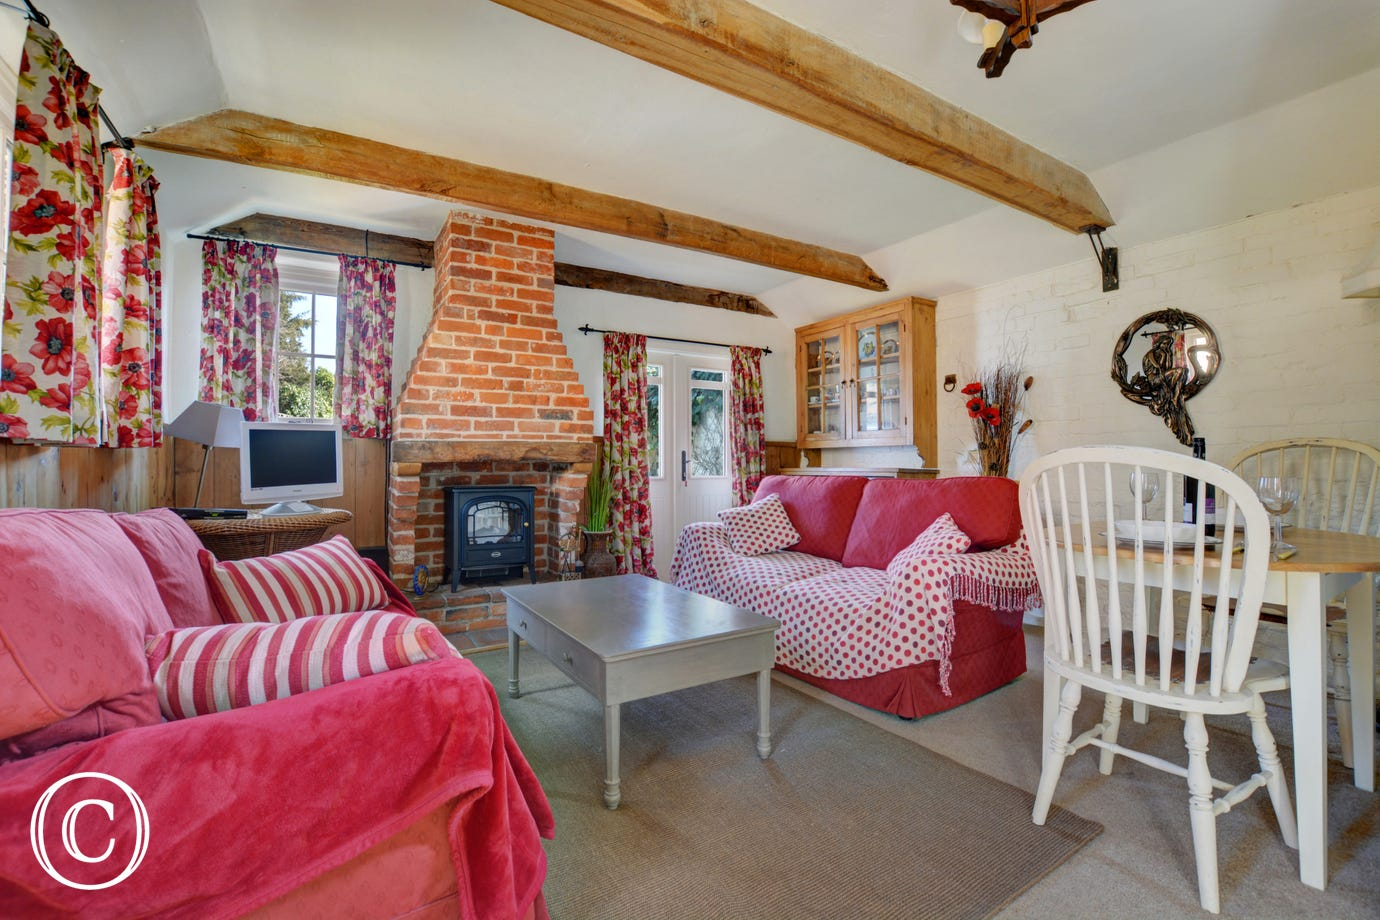 Cosy country cottage style living room, with beams and wood burner stove.